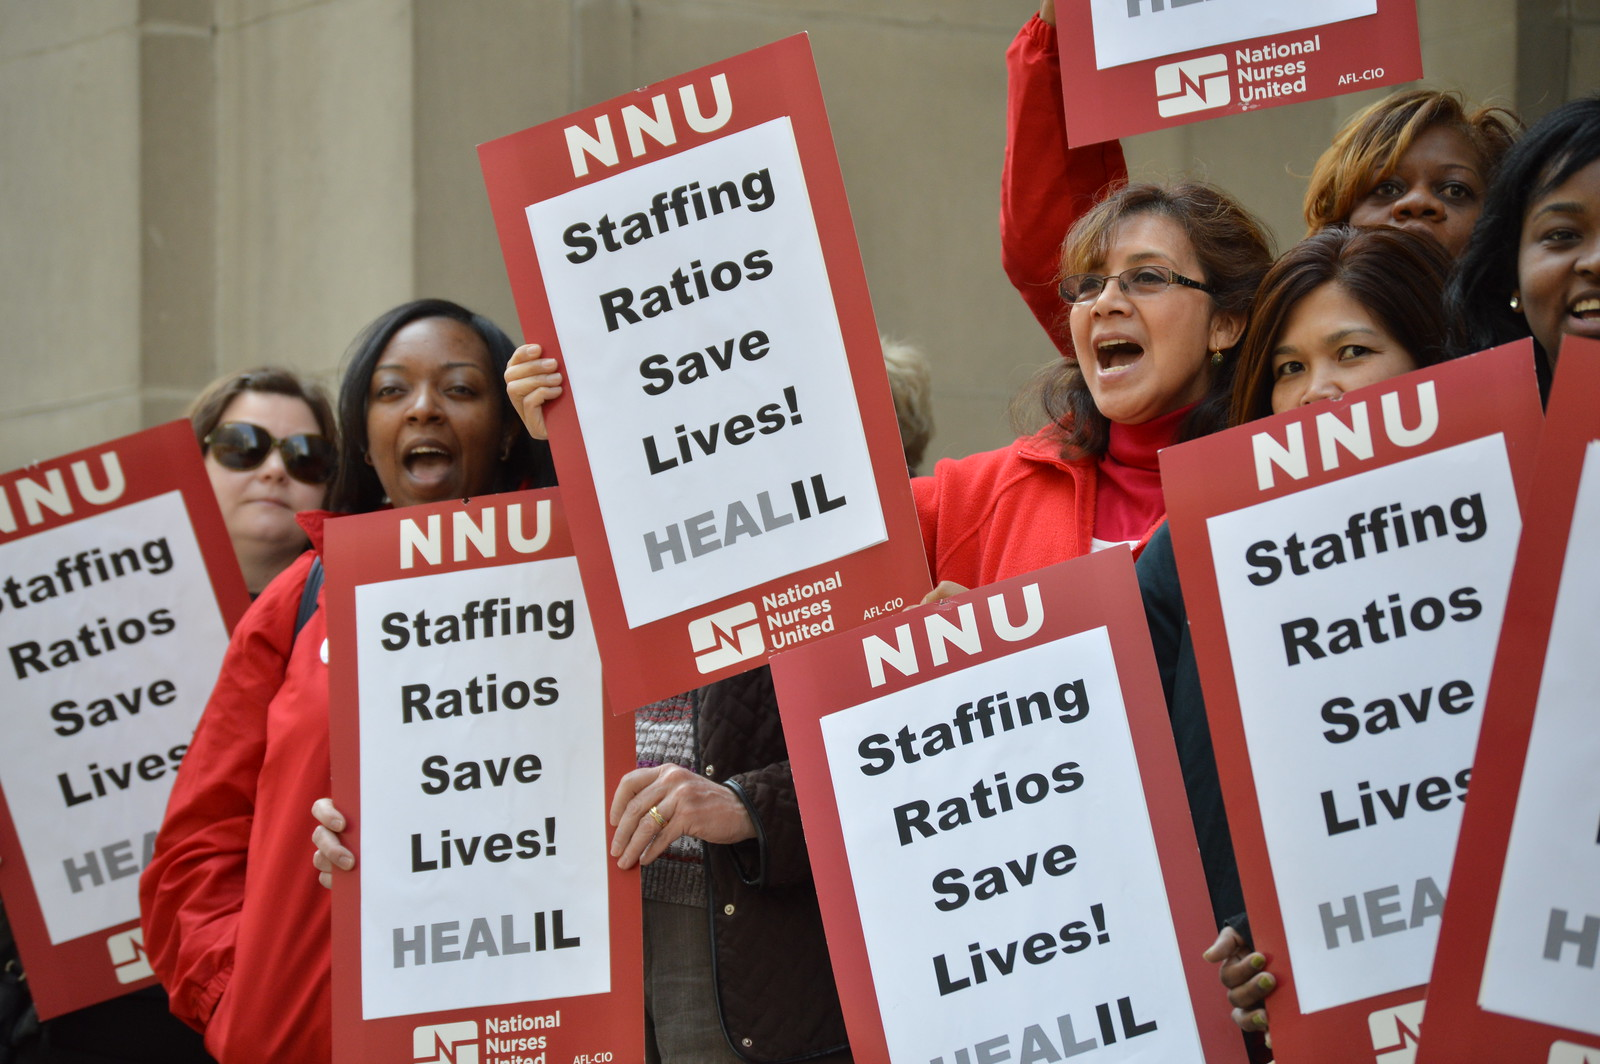 Safe RN Ratios for Illinois!